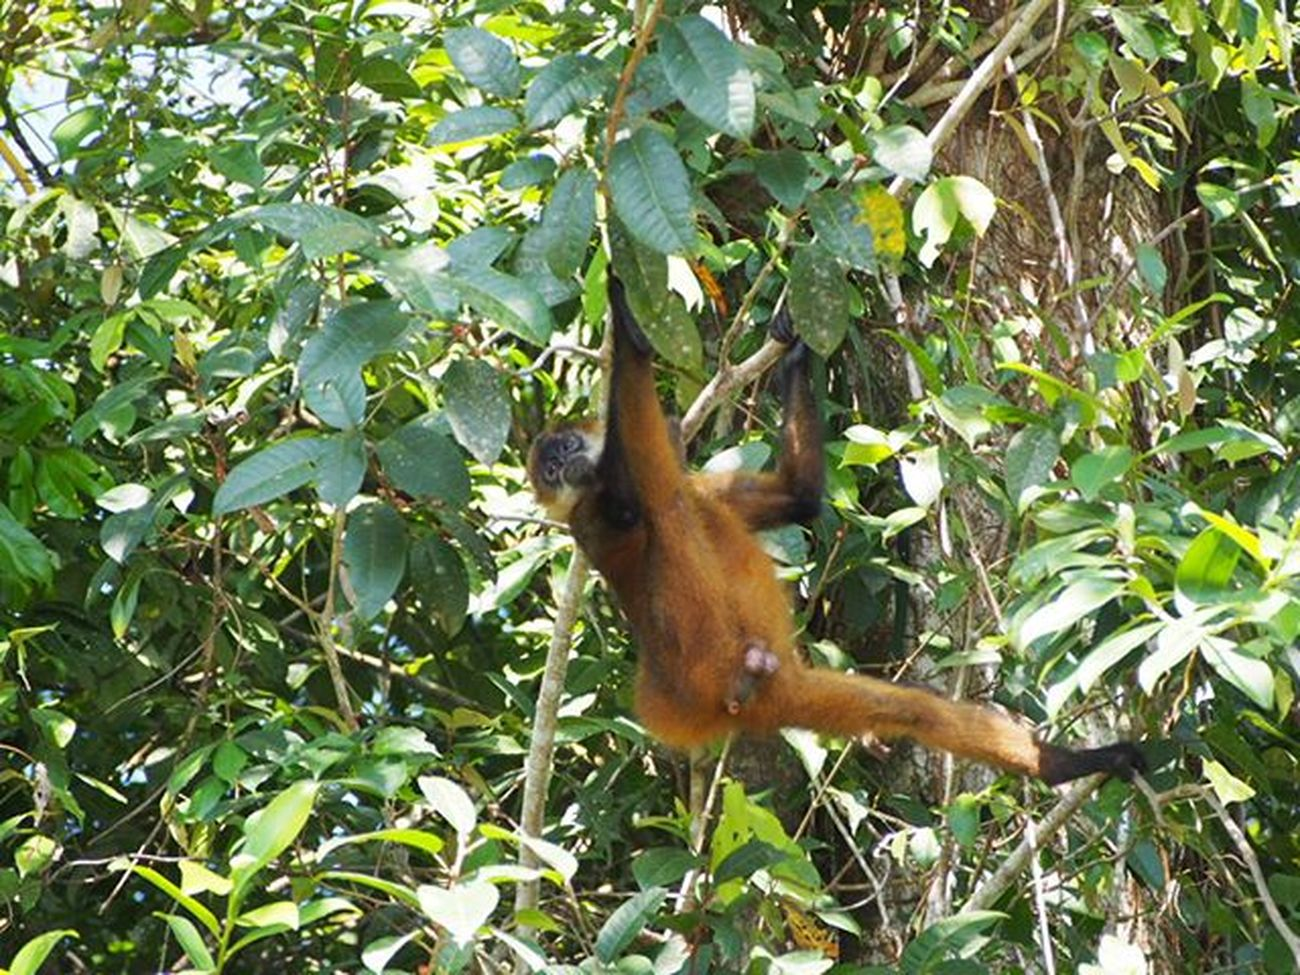 An 'old' photo of a monkey hanging around in a tree in Tortuguero National Park, Costa Rica -------------------------------------------- Monkey Monkeys Monkeyseemonkeydo Monkeybusiness  Wildlife Naturelovers Naturephotography Wildlifephotography Olympus Gadventurestour Gadventures Costarica Costarica2015 Explorecostarica Tortuguero  Tortugueronationalpark Travel Travelling Natgeo Natgeowild Natgeowildlife